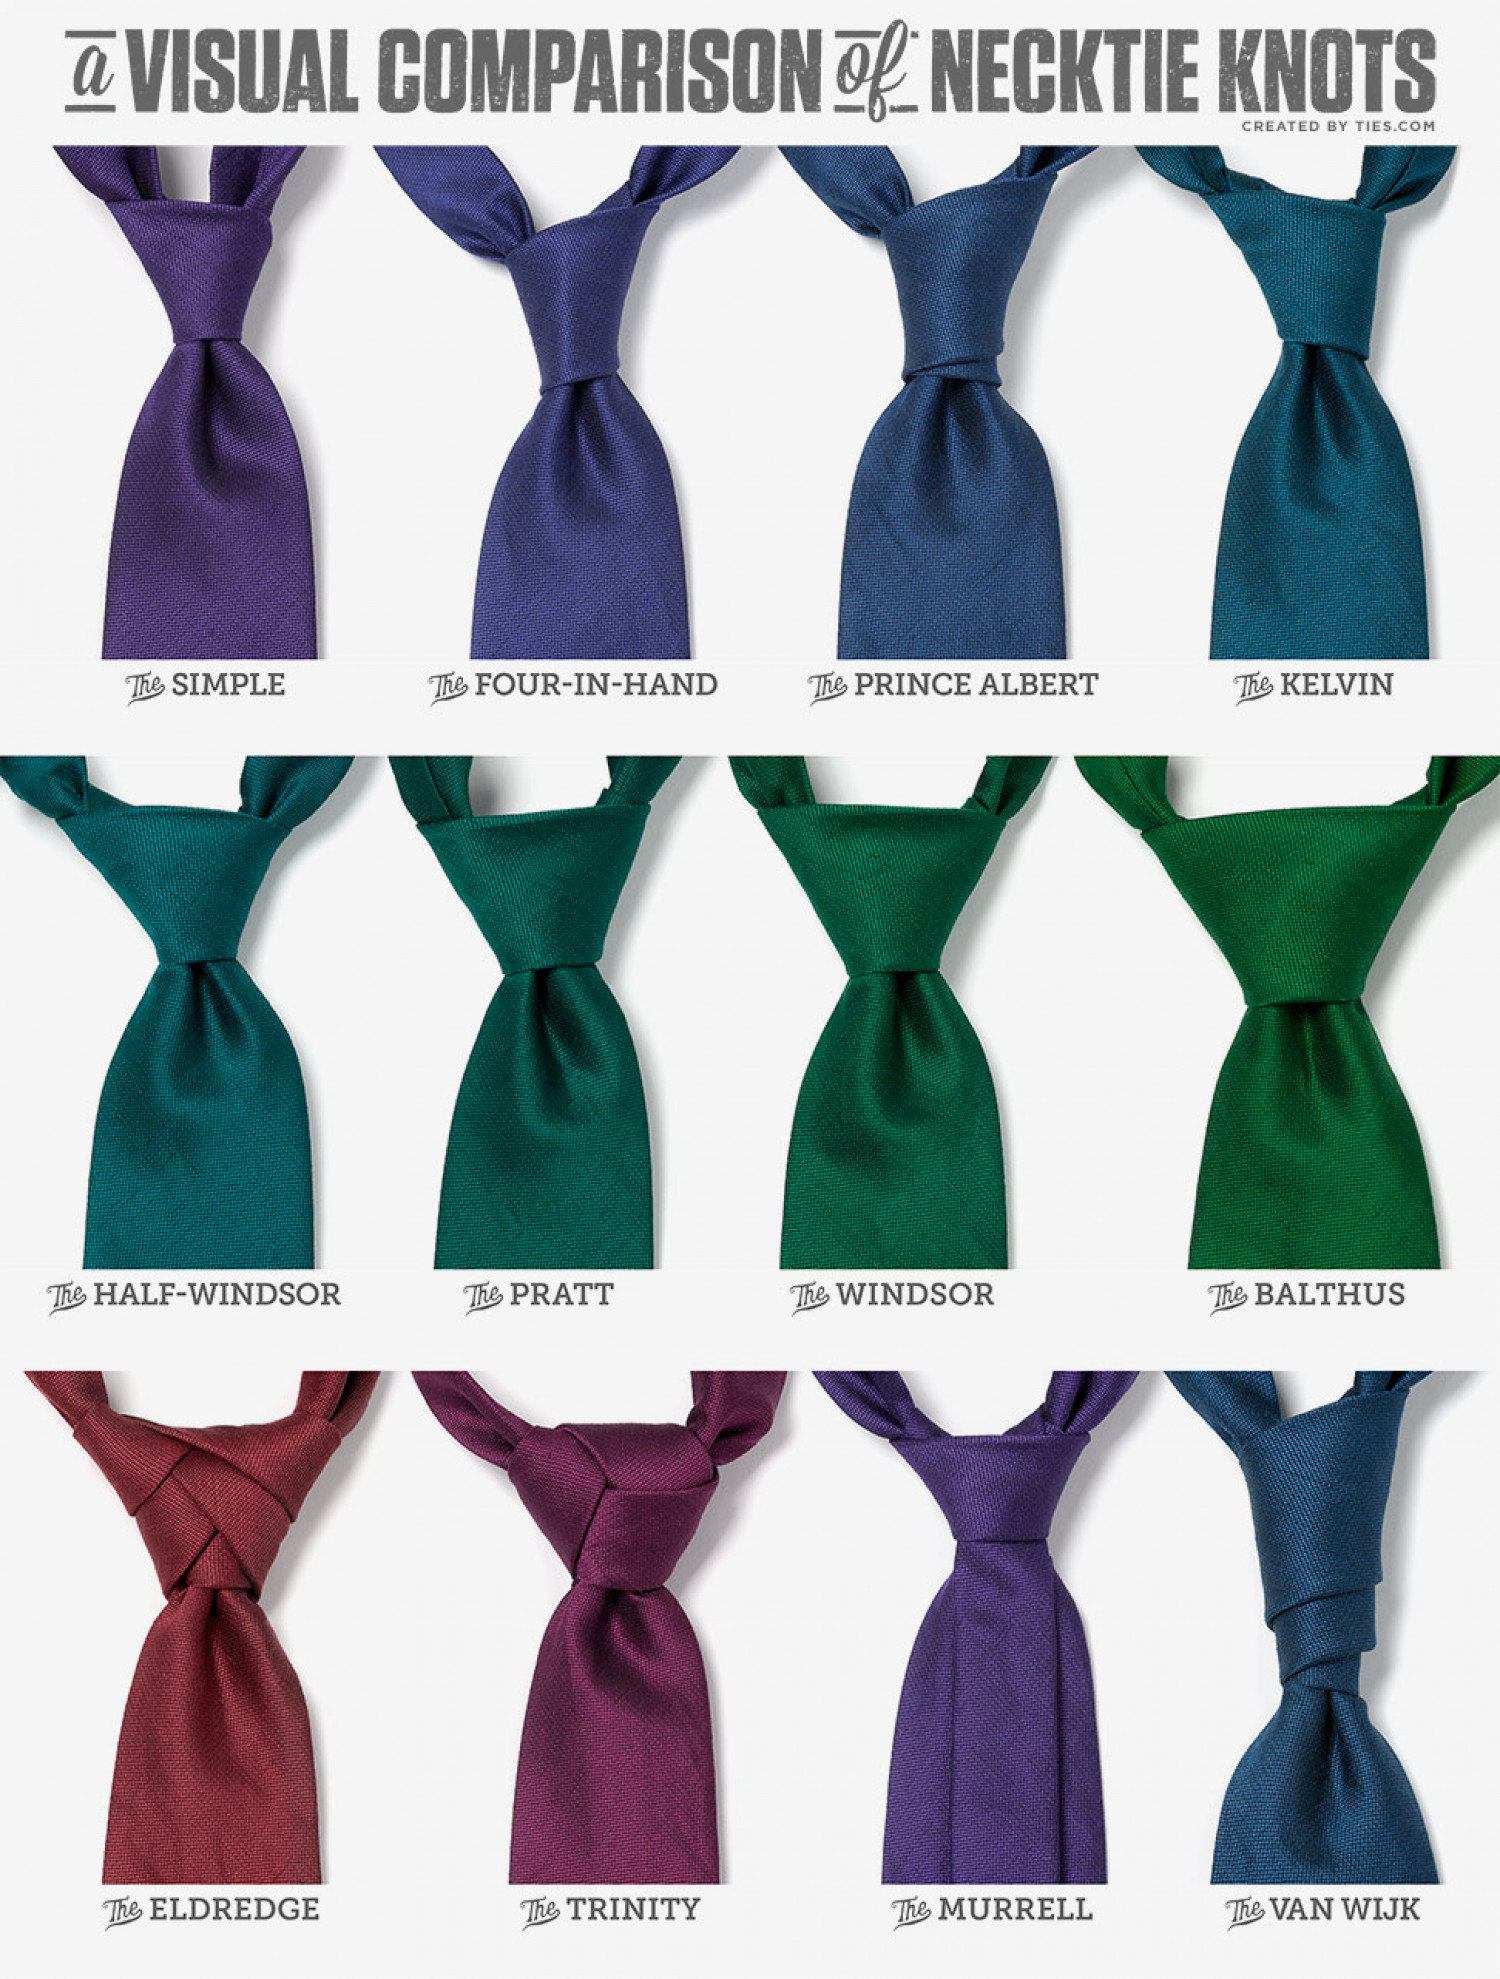 A Visual Comparison of Necktie Knots | Visual.ly - photo#21